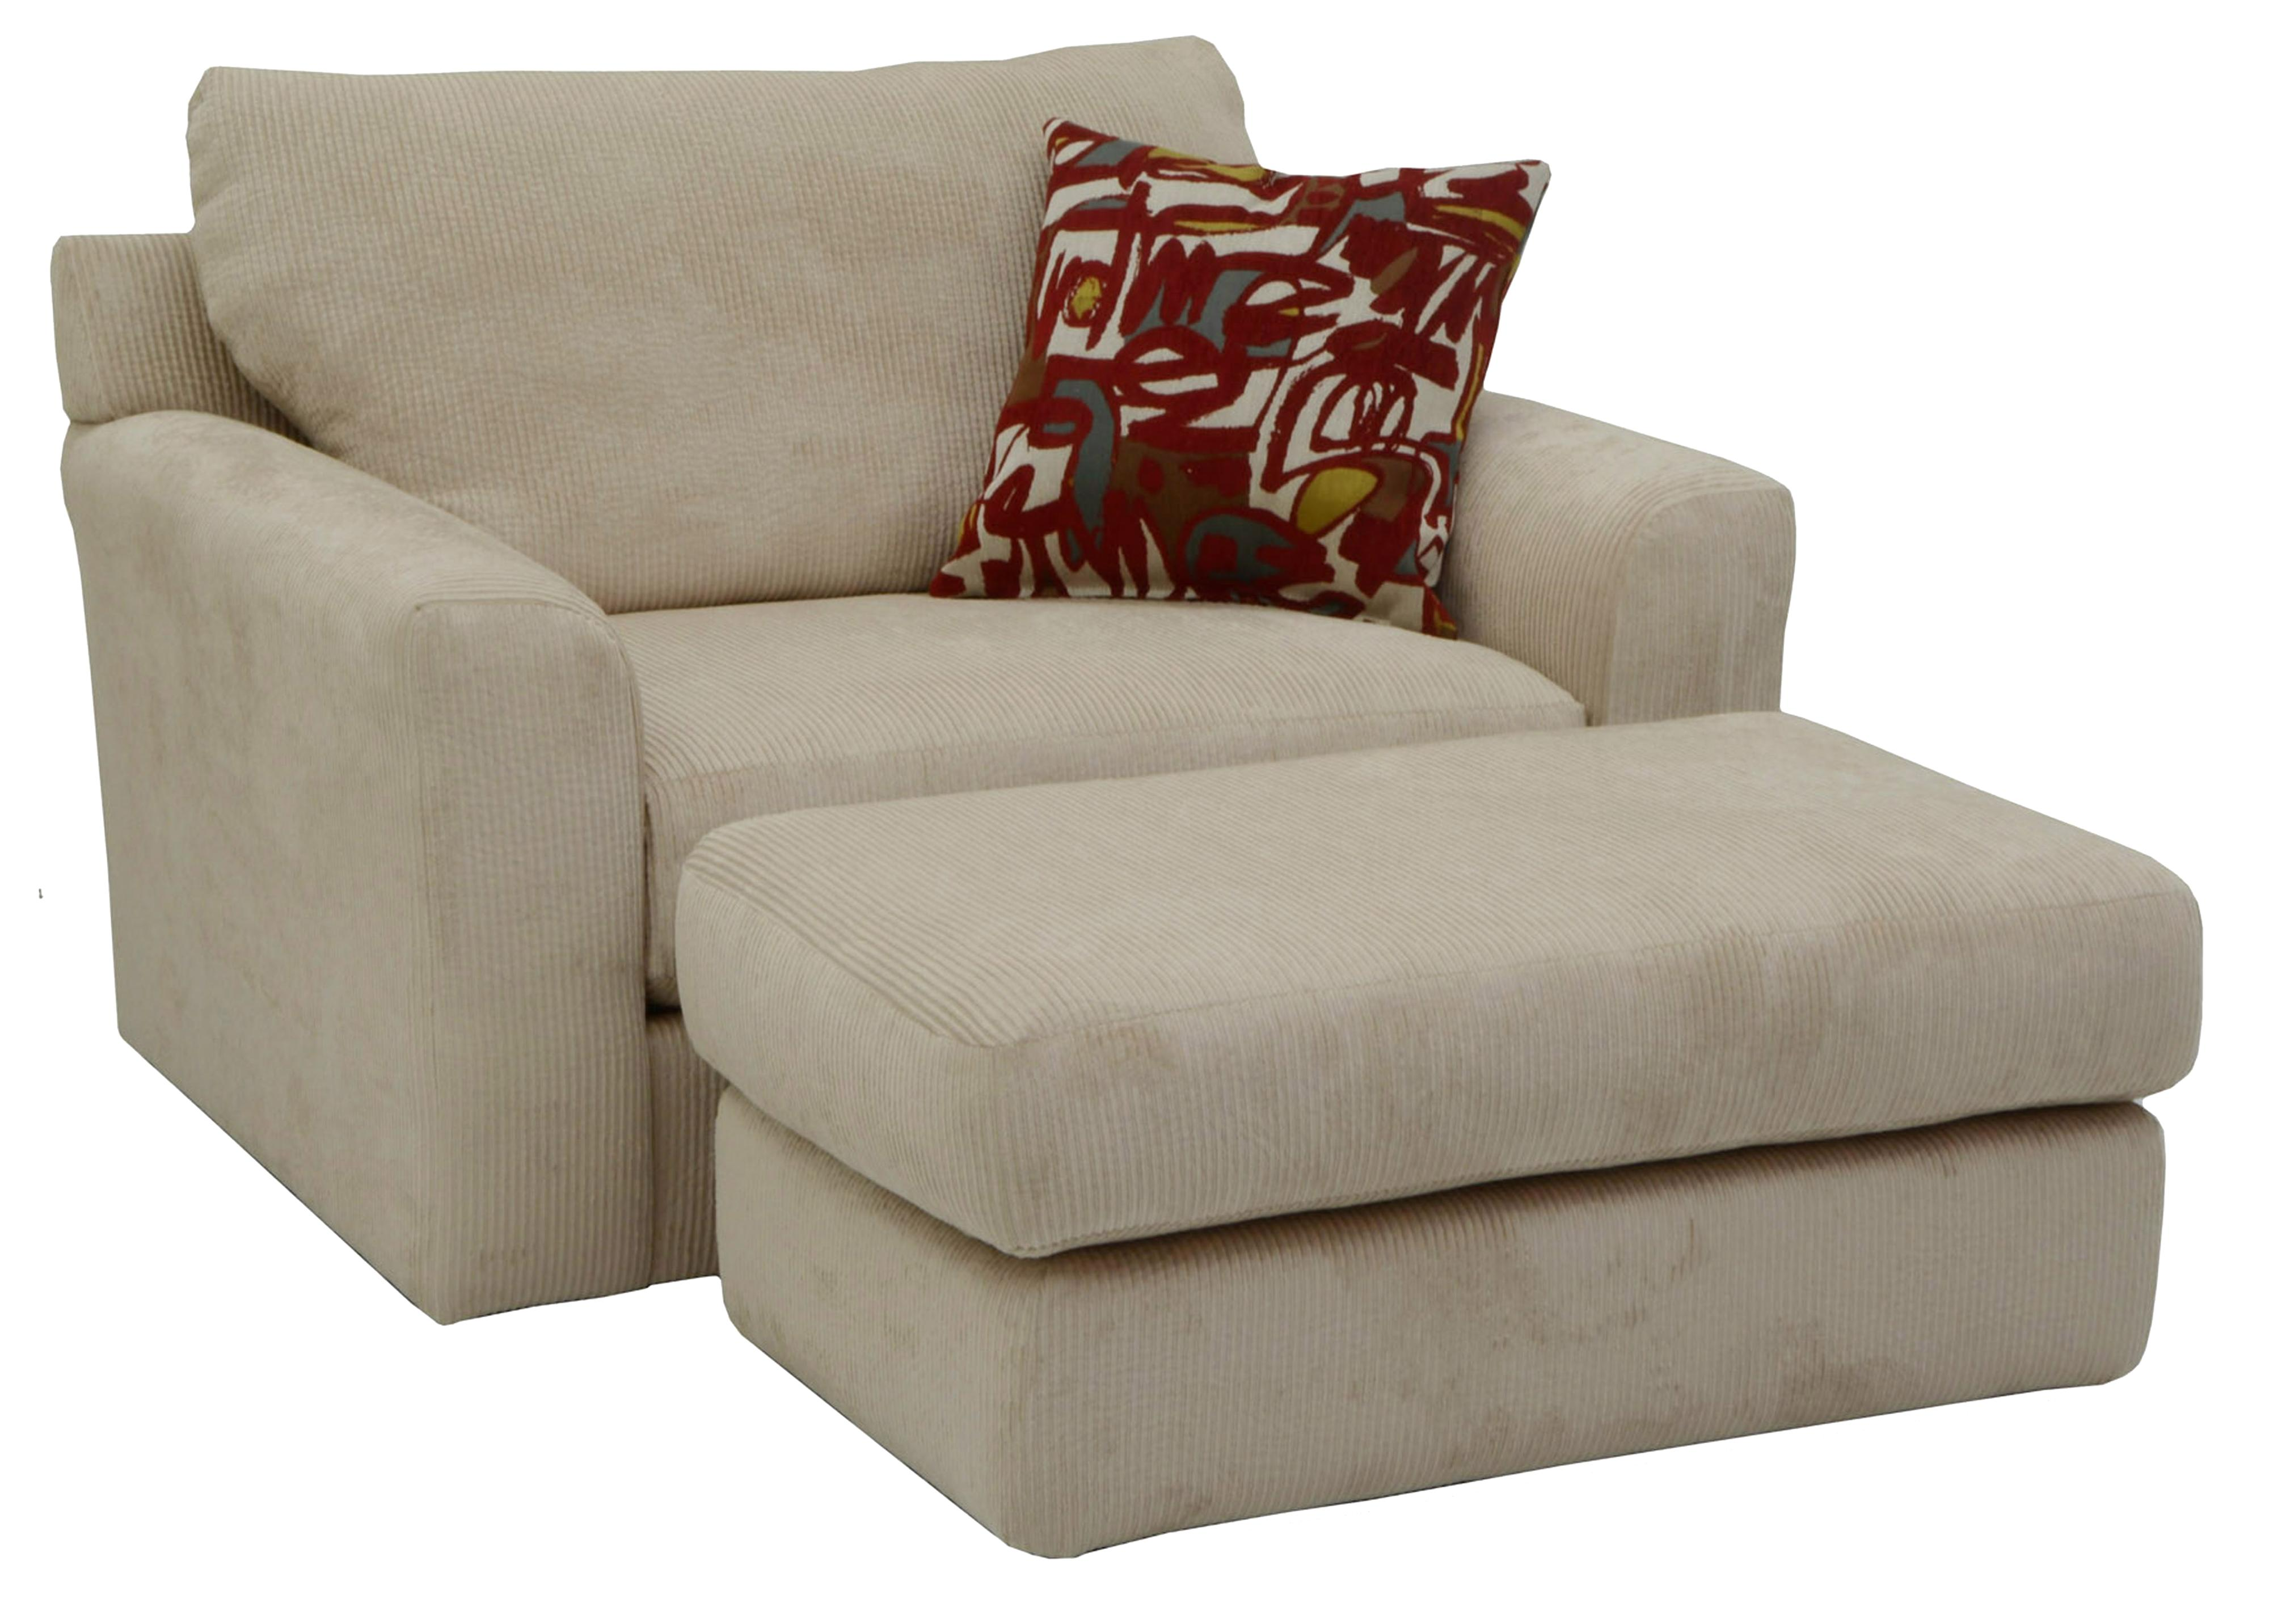 Jackson Furniture Sutton Chair and a Half and Ottoman with Casual